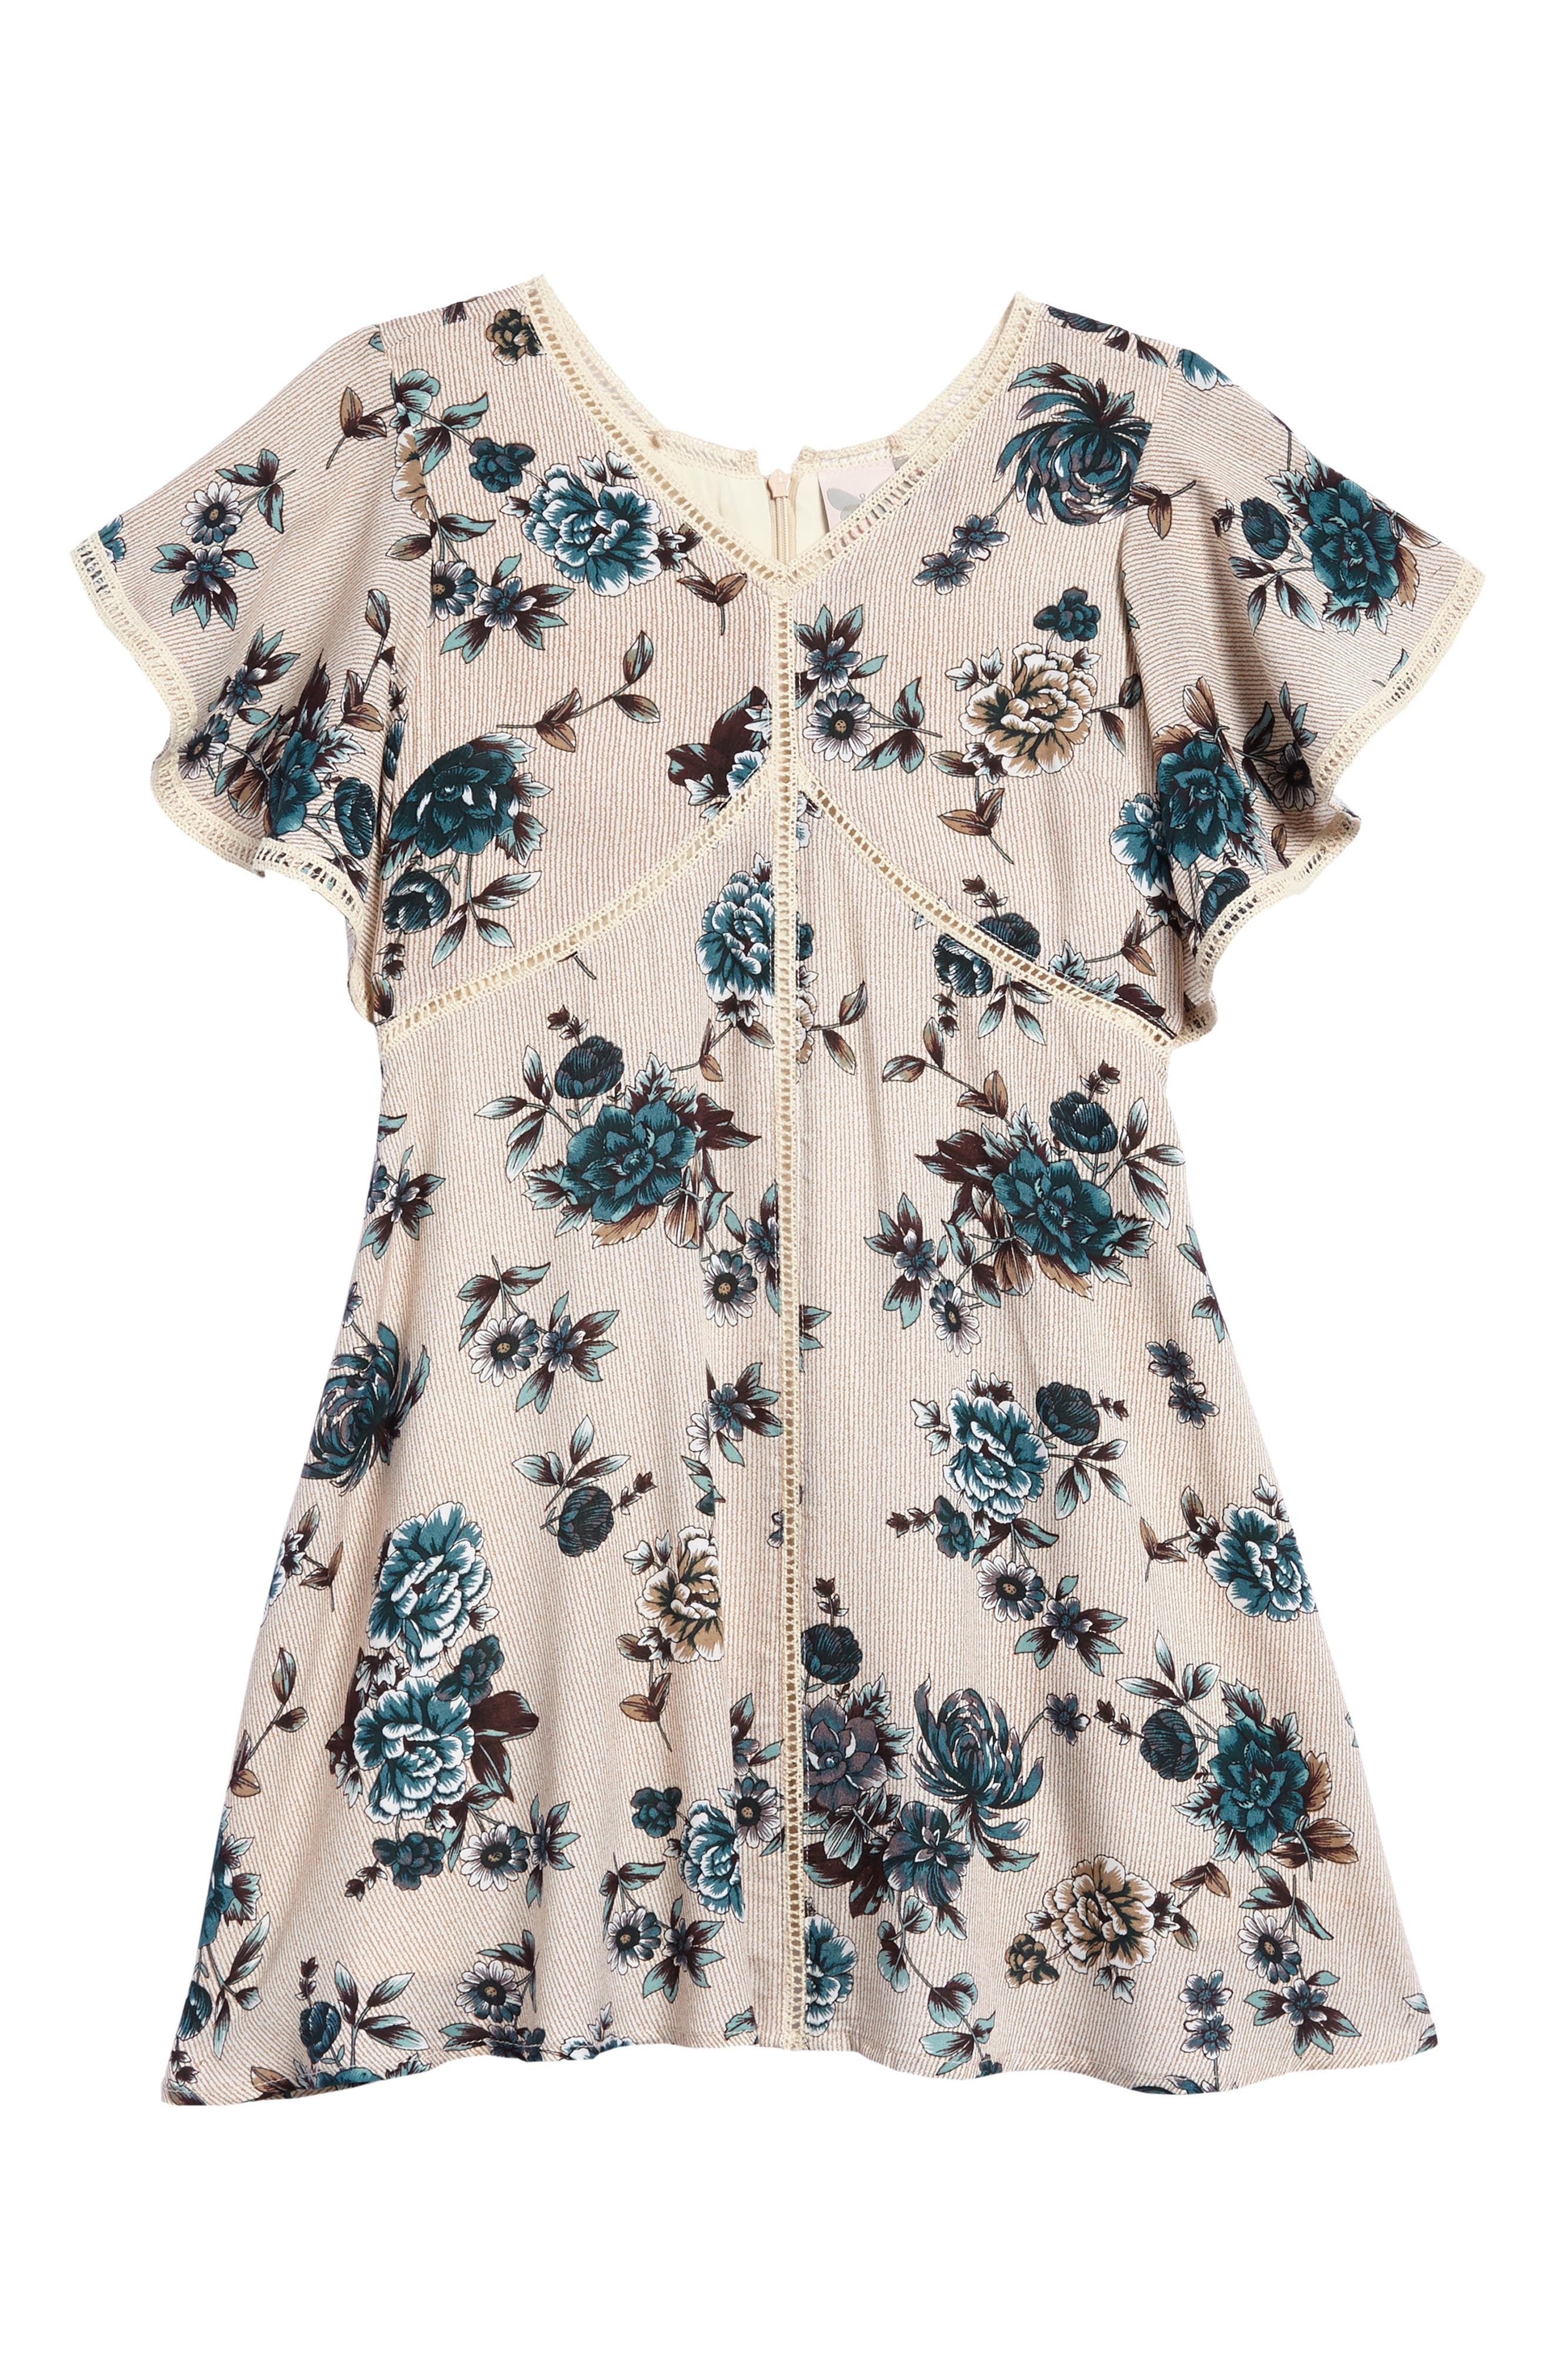 Floral Print Ruffle Sleeve Dress,                         Main,                         color, Beige/ Navy